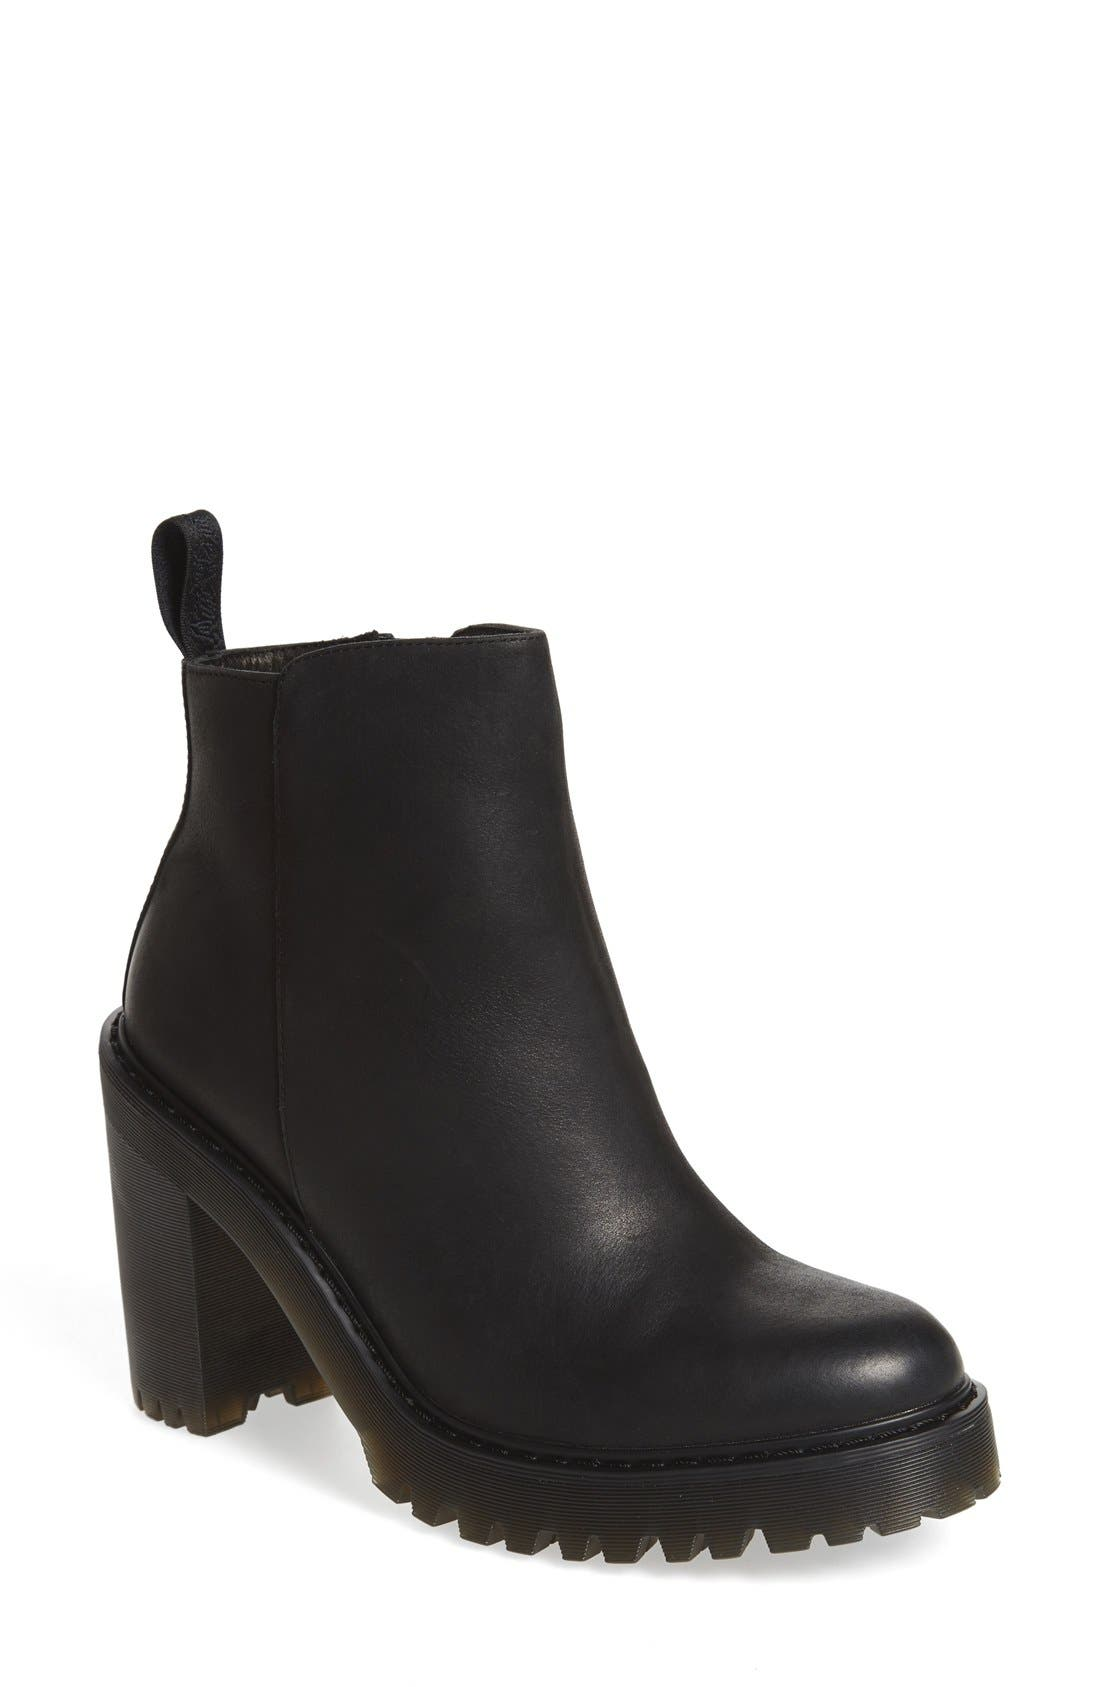 'Magdalena' Platform Bootie,                         Main,                         color, Black Wyoming